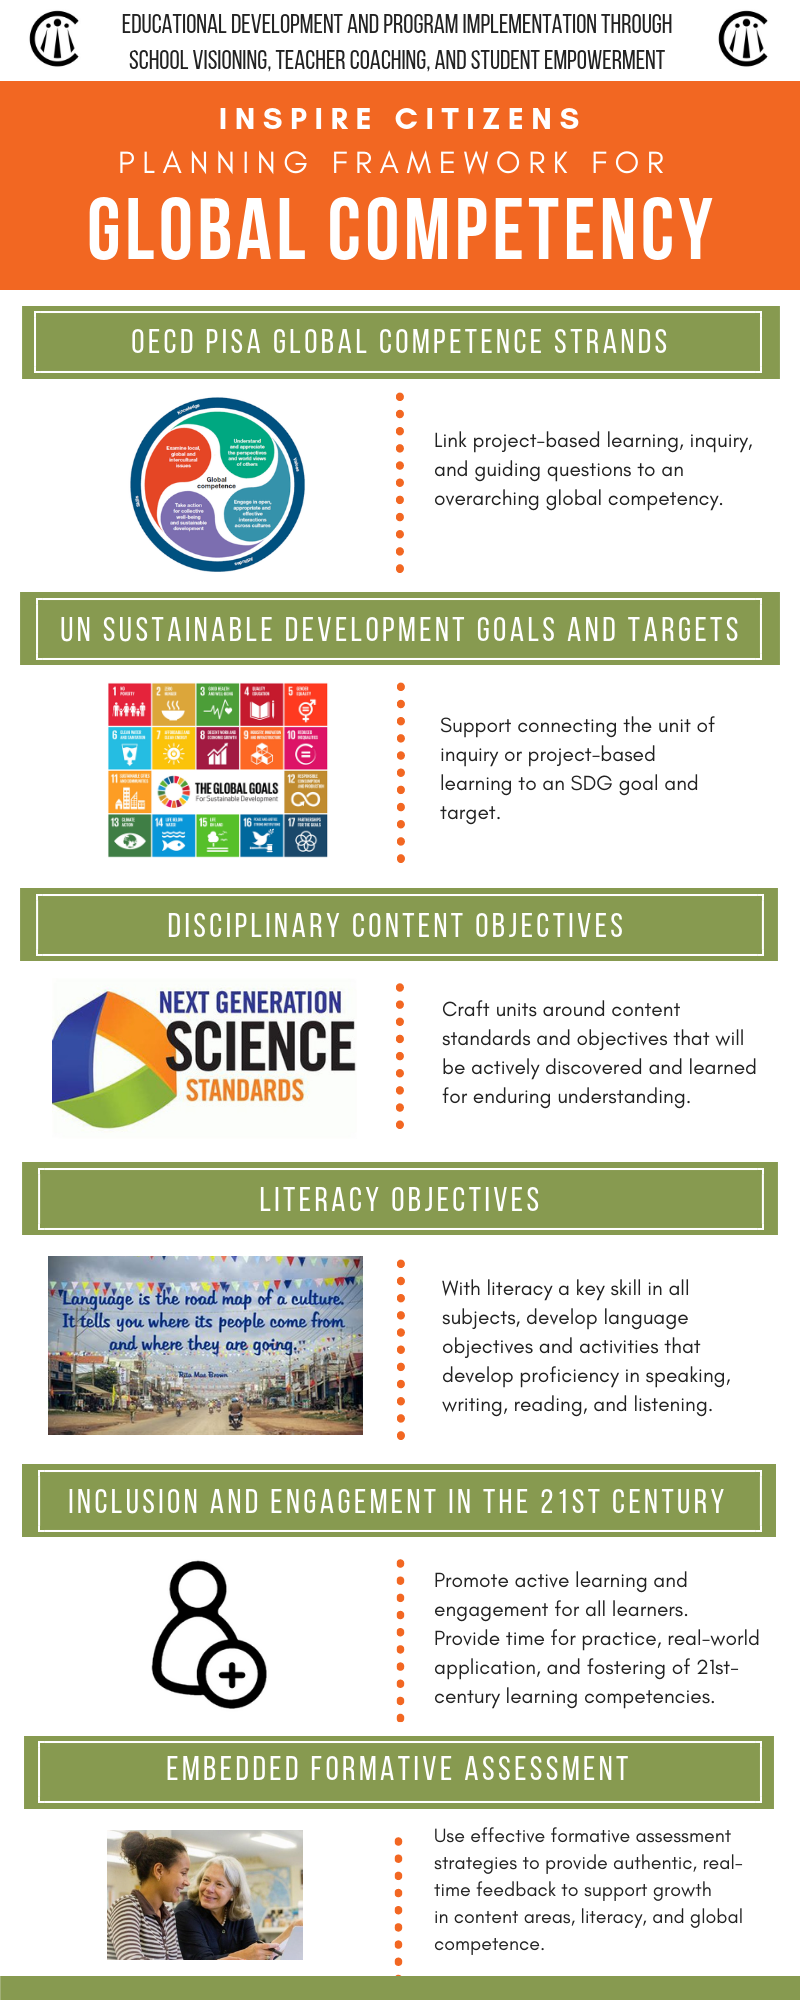 Inspire Citizens OECD PISA Global Competence Lesson Framework.png